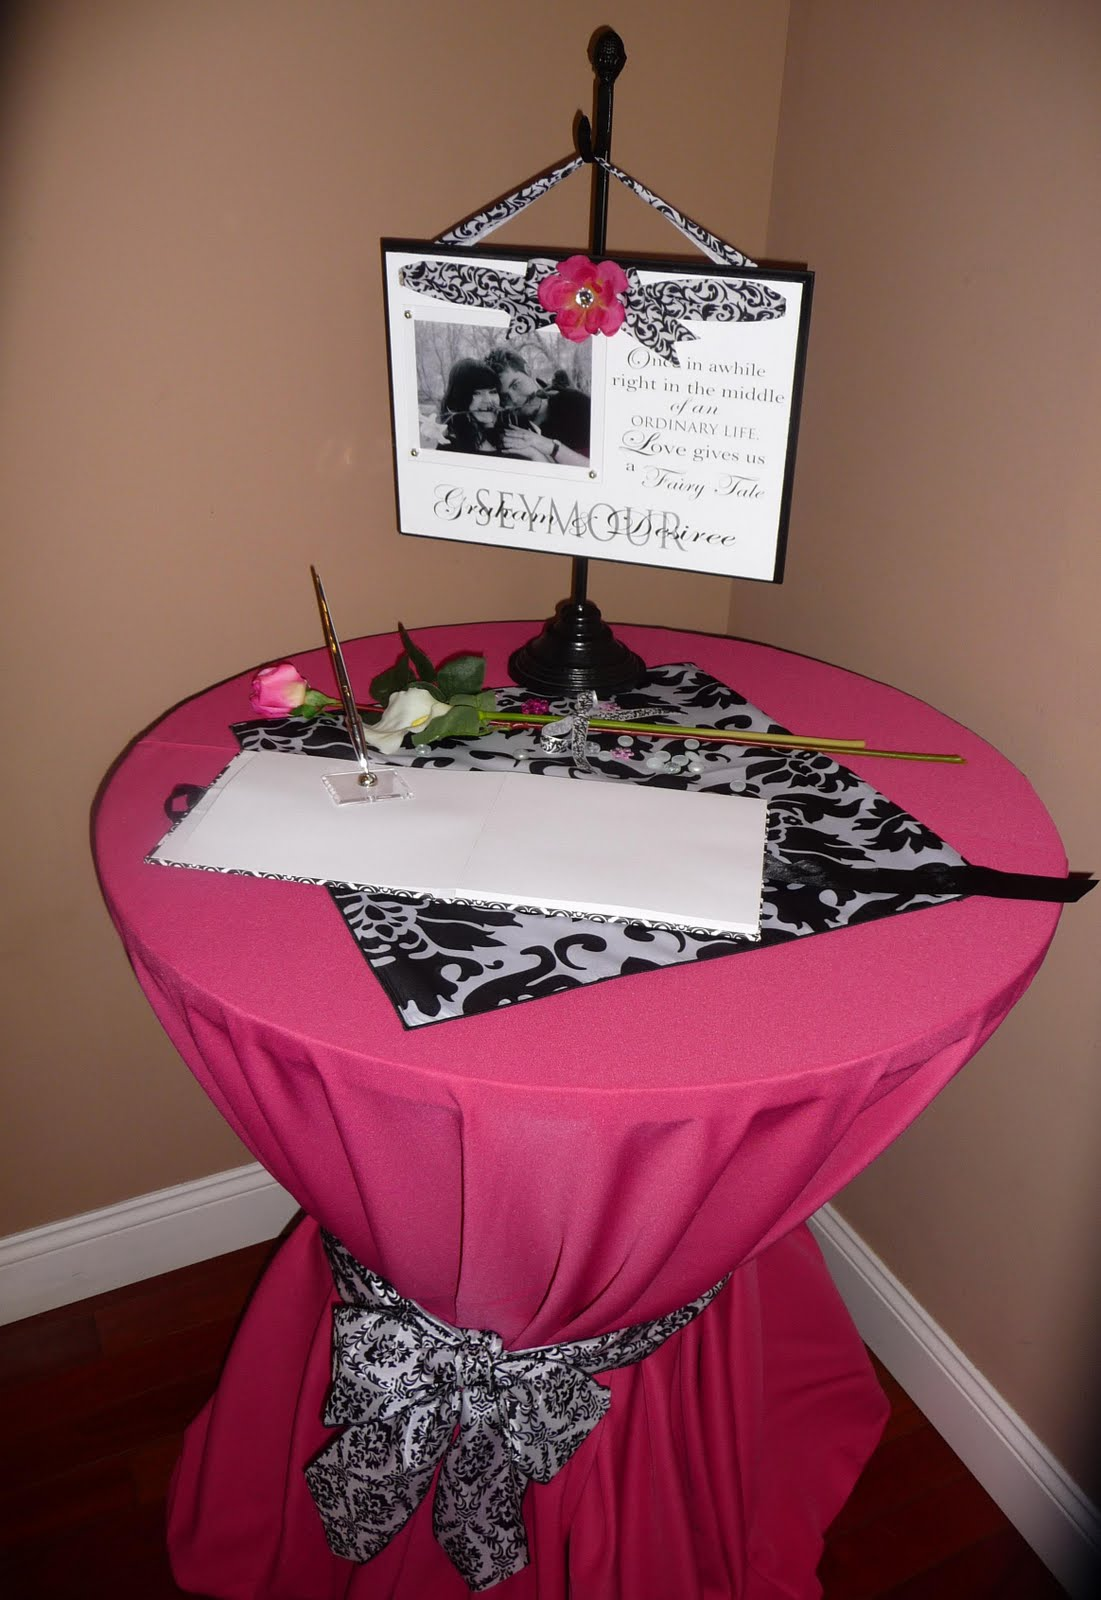 Wedding Gift Table Sign Ideas : Chers Signs by Design: Personalized Wedding Gifts/ Decorations